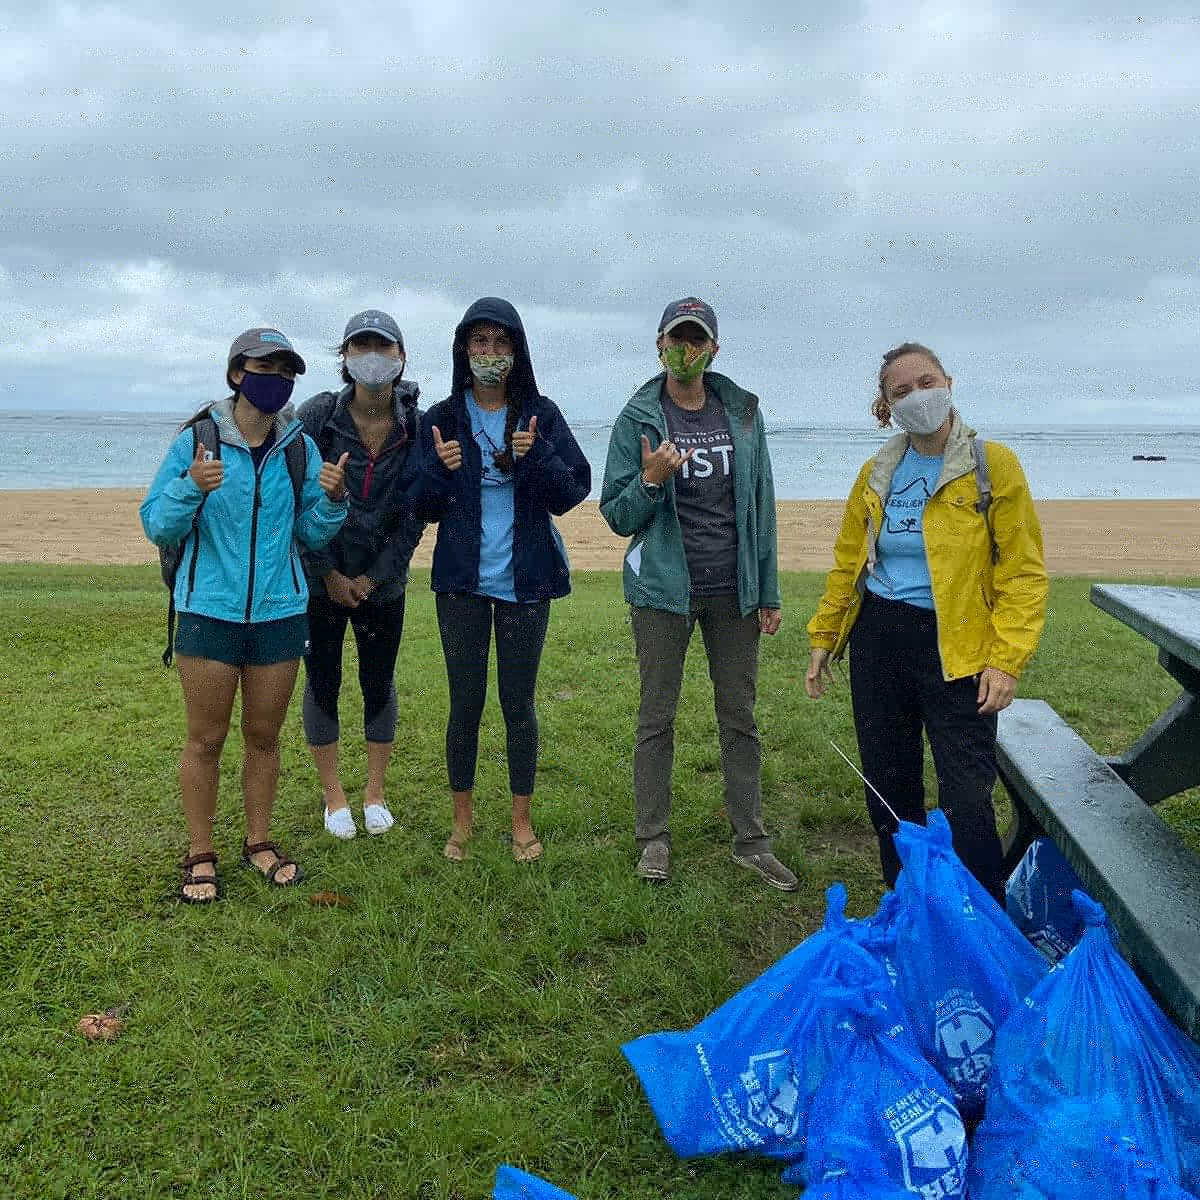 @AmeriCorps members get things done! 20 AmeriCorps VISTAs from 10 City agencies spent the morning cleaning up Ala Moana Beach Park this past Monday and collected 60 lbs of trash from our shorelines.   #ploggingoahu #GreatGlobalCleanUp #Plogging #TrashTag #mlkdayofservice